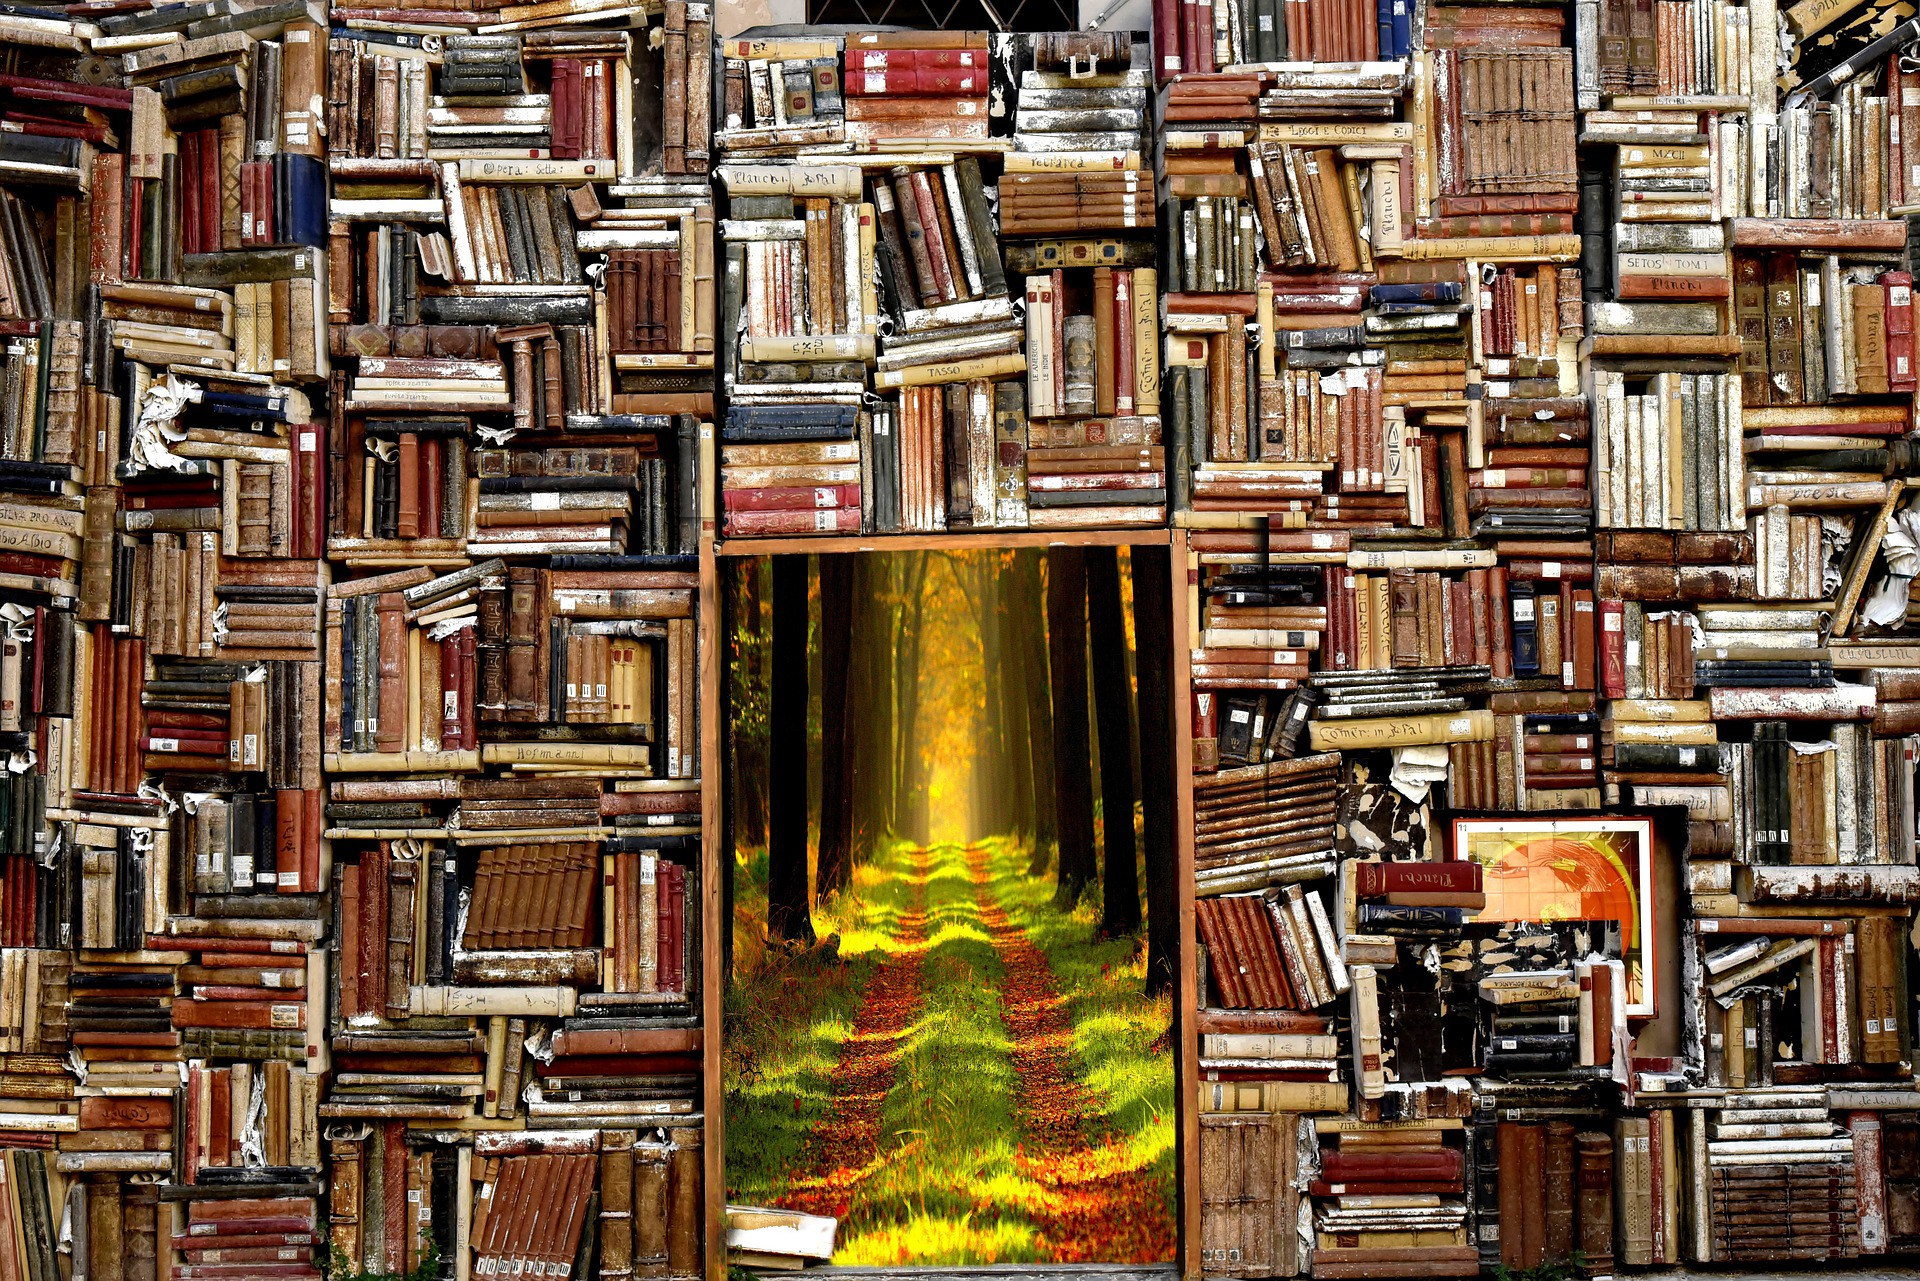 Through Books, I Learned to Love the Natural World I Never Saw